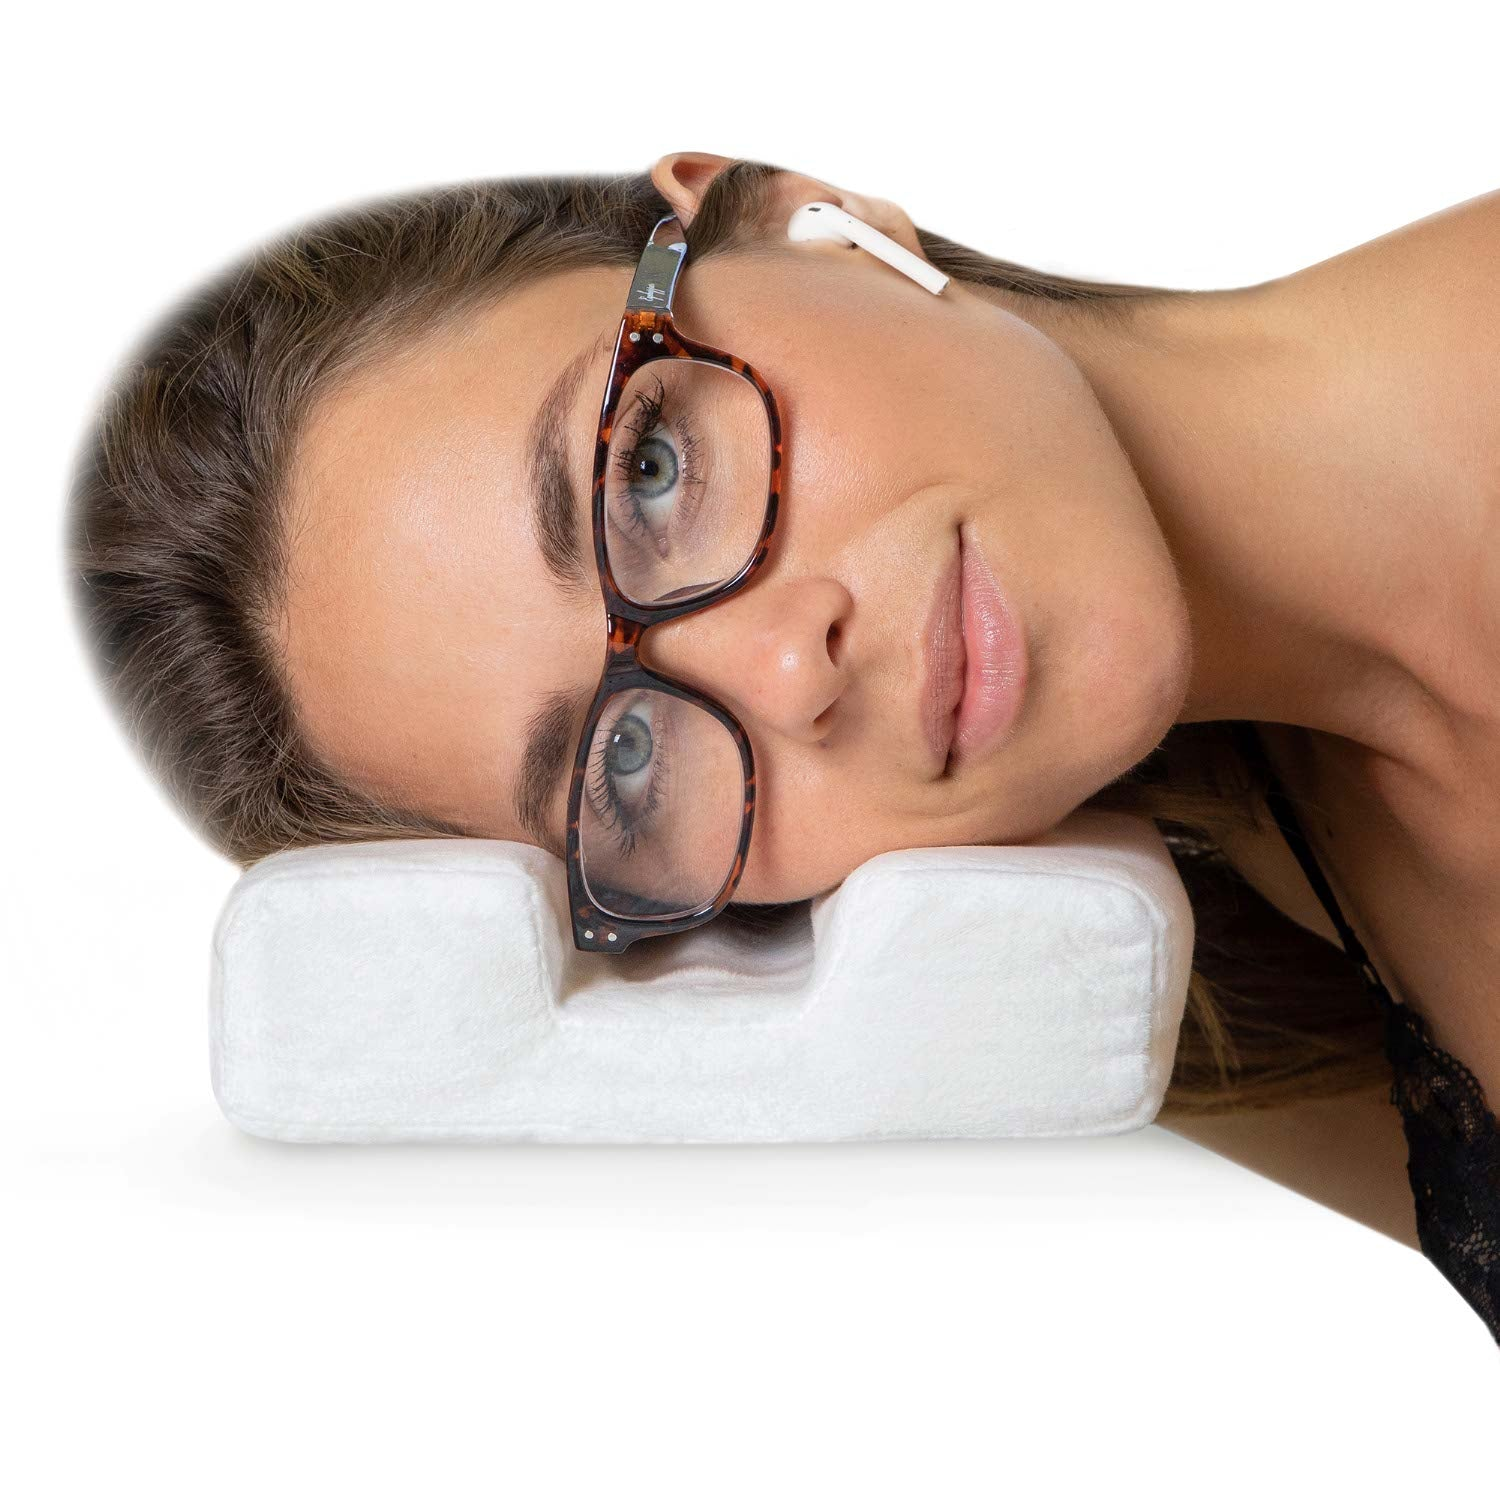 MyComfyPad for Airpods and glasses users. Eyeglass pillow and glasses pillow to prevent your ears from hurting when lying down with Airpods or earphones and prevents smushed glasses when falling asleep. Great gift for Airpods, glasses, hearing aids.